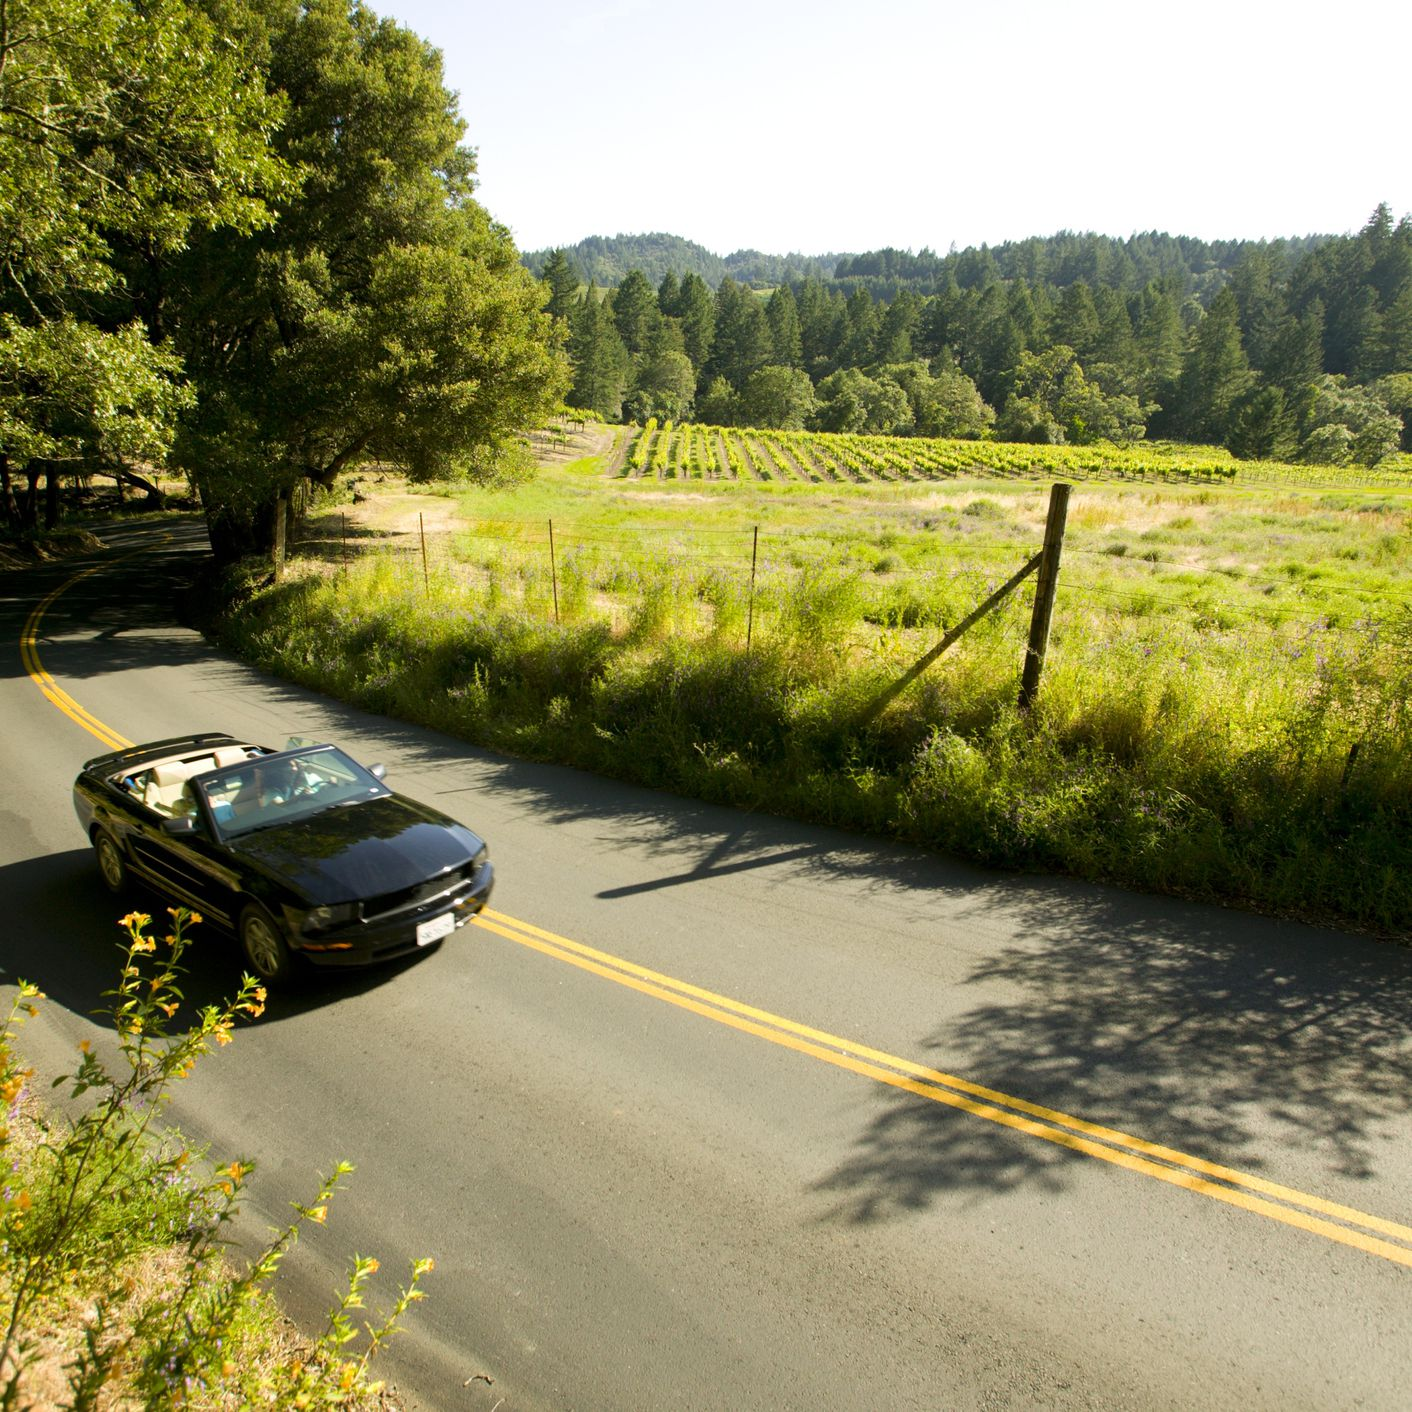 California Scenic Drives: 7 Routes That Will Make You Swoon